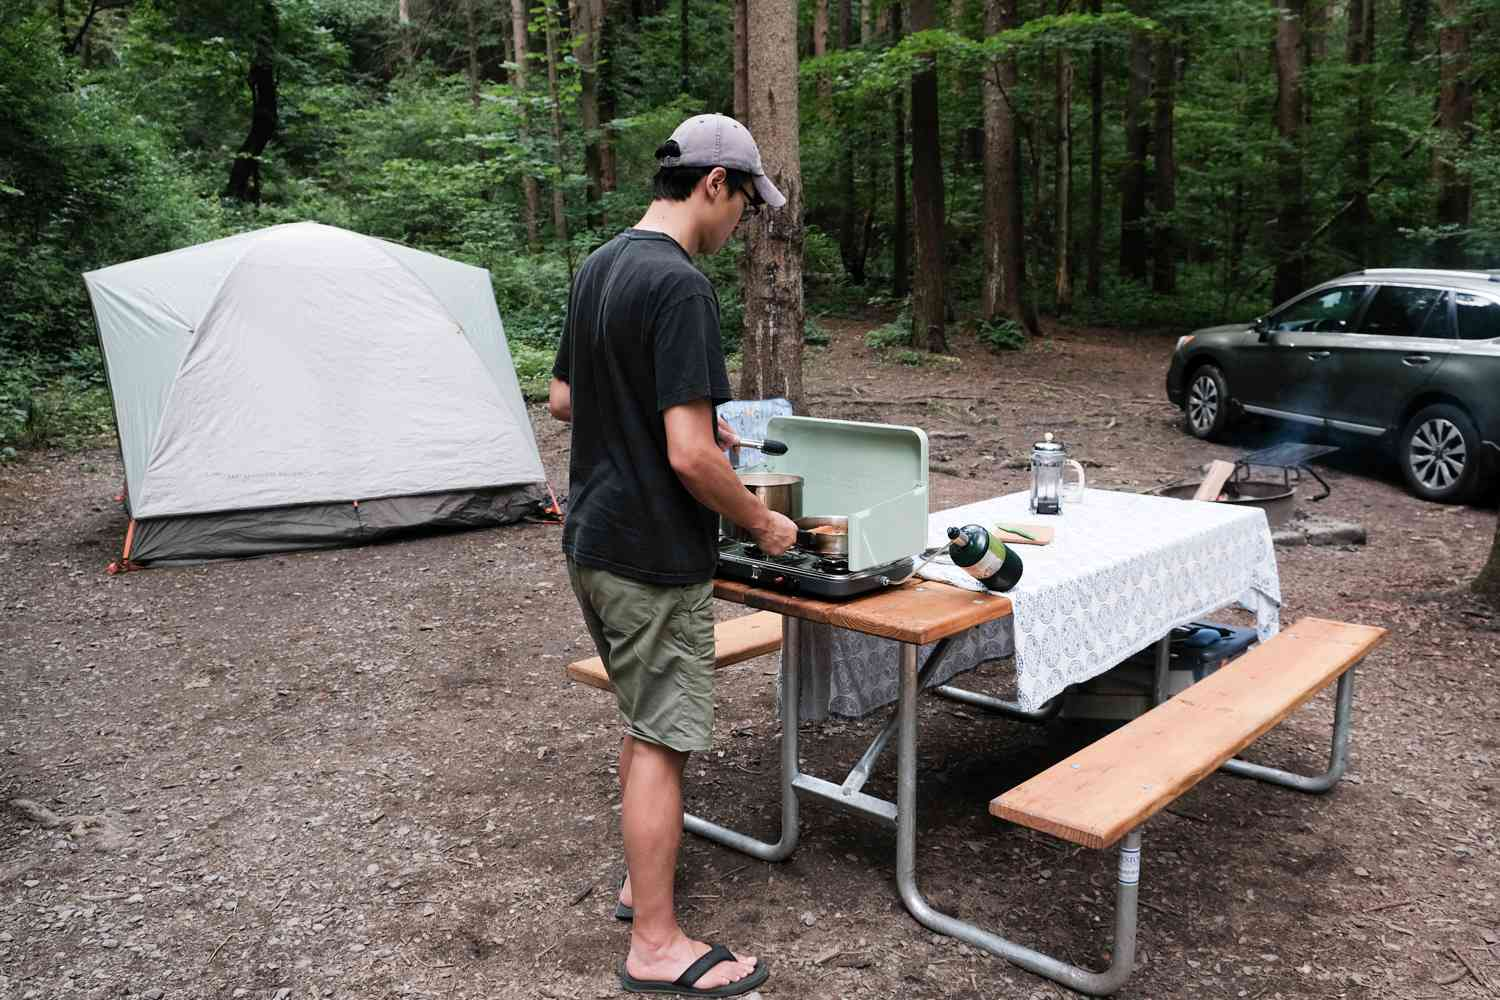 man cooks on camping stove on picnic table with tent and car nearby